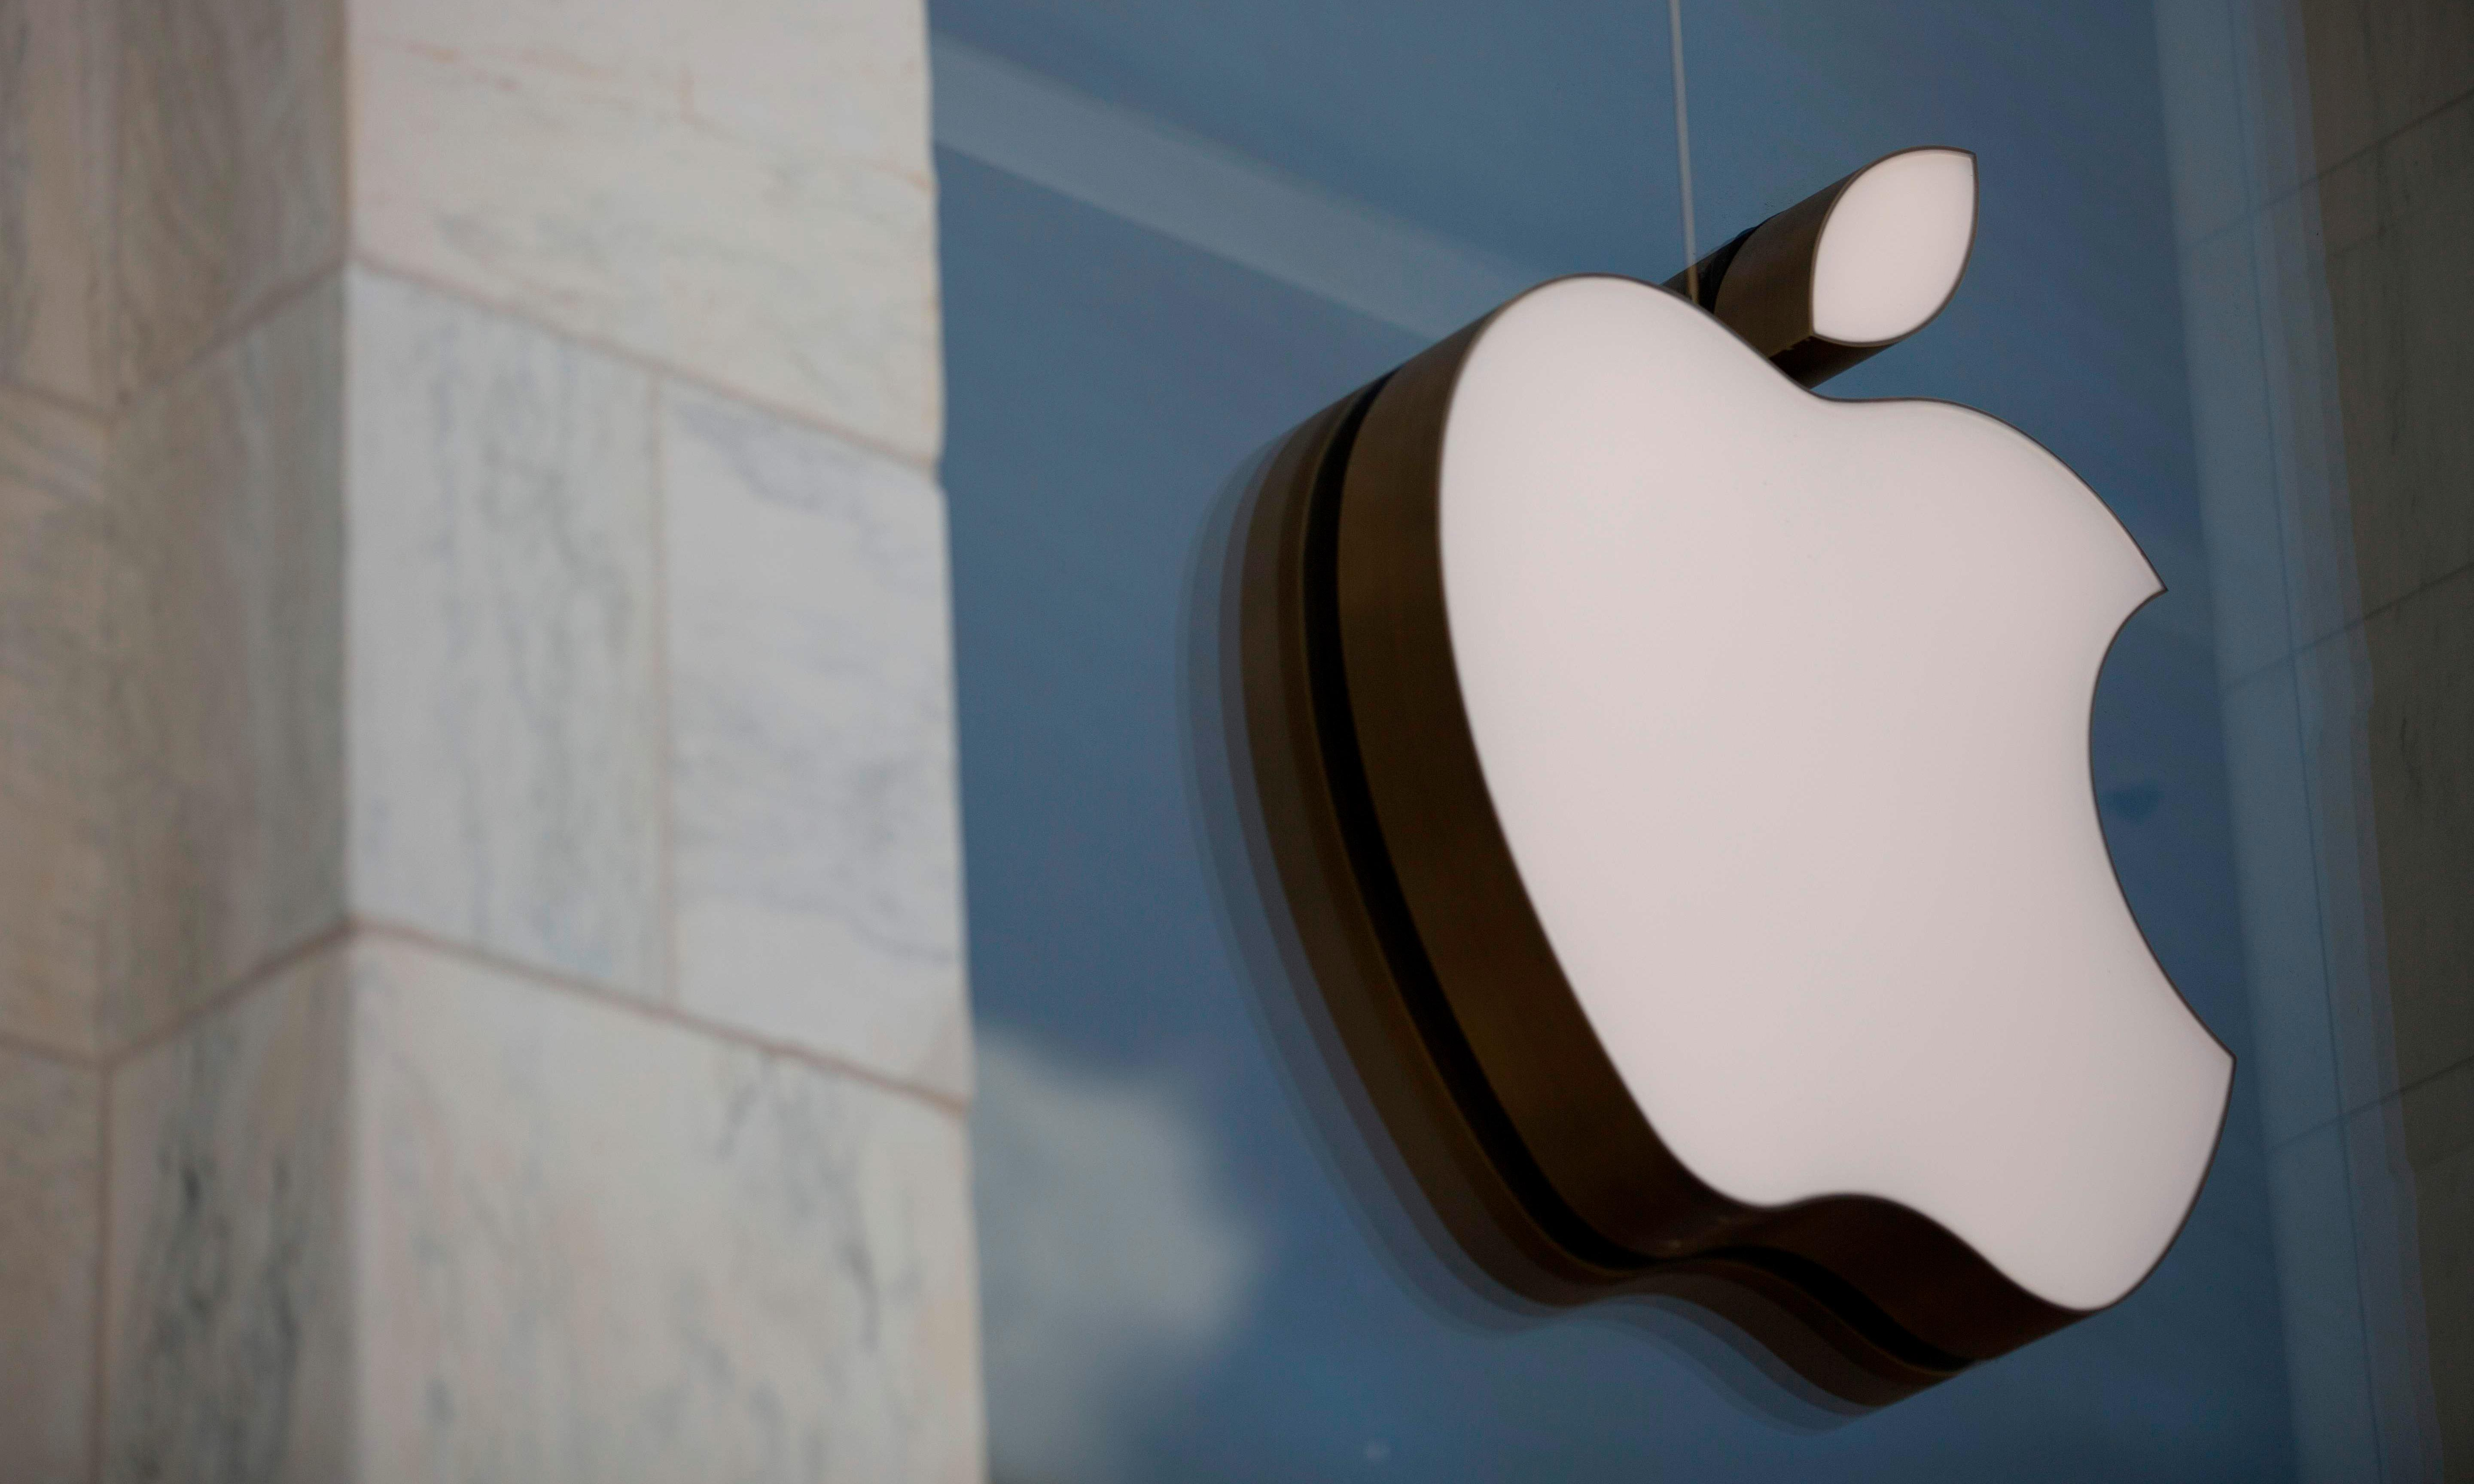 Apple accidentally reopens security flaw in latest iOS version